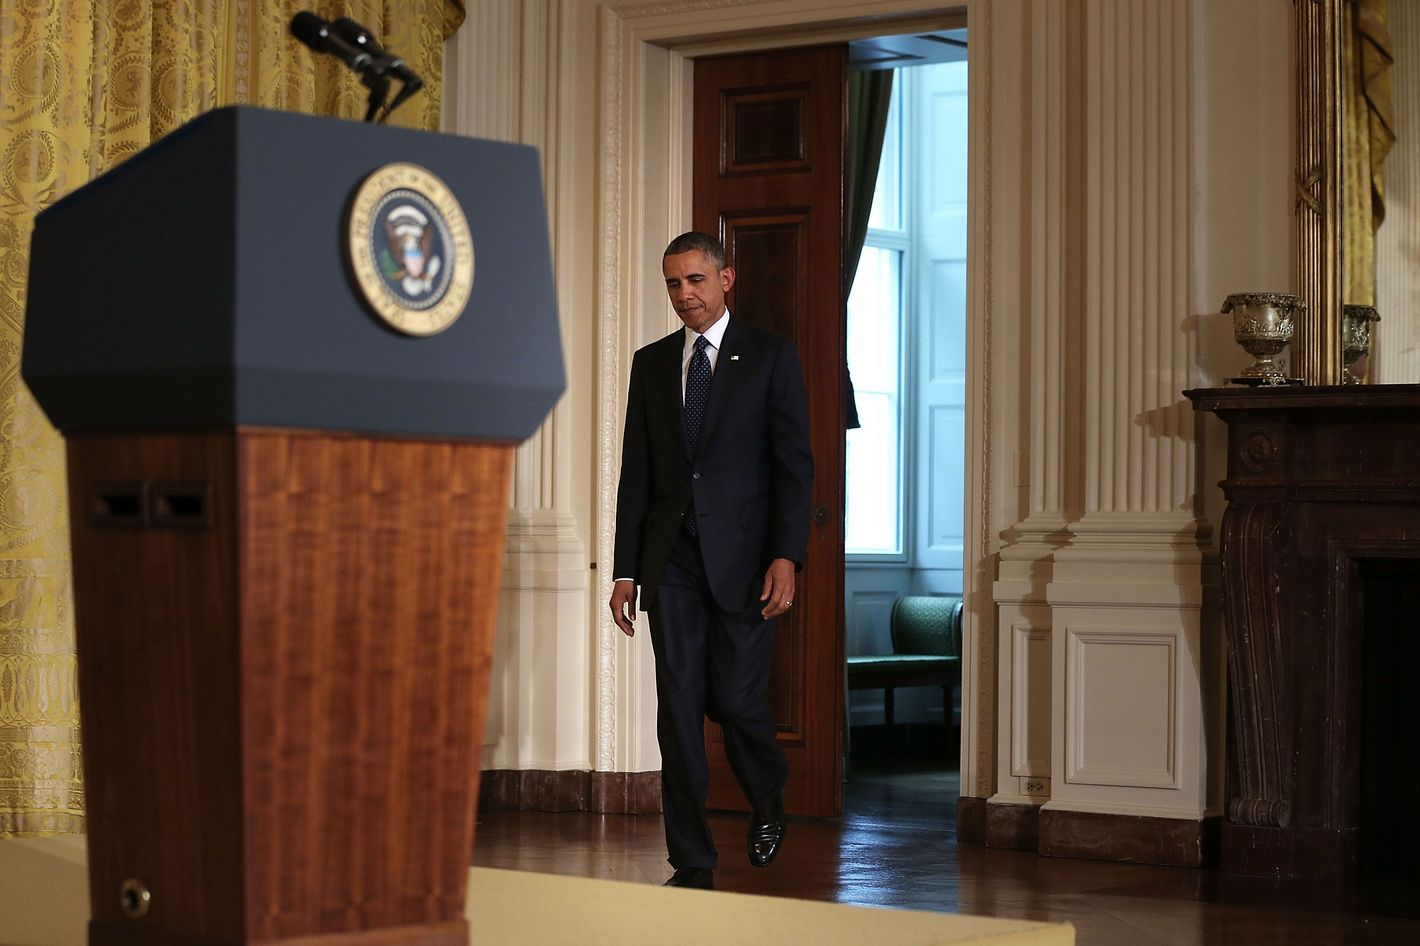 U.S. President Barack Obama approaches the podium to make a statement on the situation regarding the Internal Revenue Service May 15, 2013 at the East Room of the White House in Washington, DC. Obama had a meeting with Senior Treasury Officials, including Treasury Secretary Jack Lew via telephone, on the situation regarding the Internal Revenue Service.